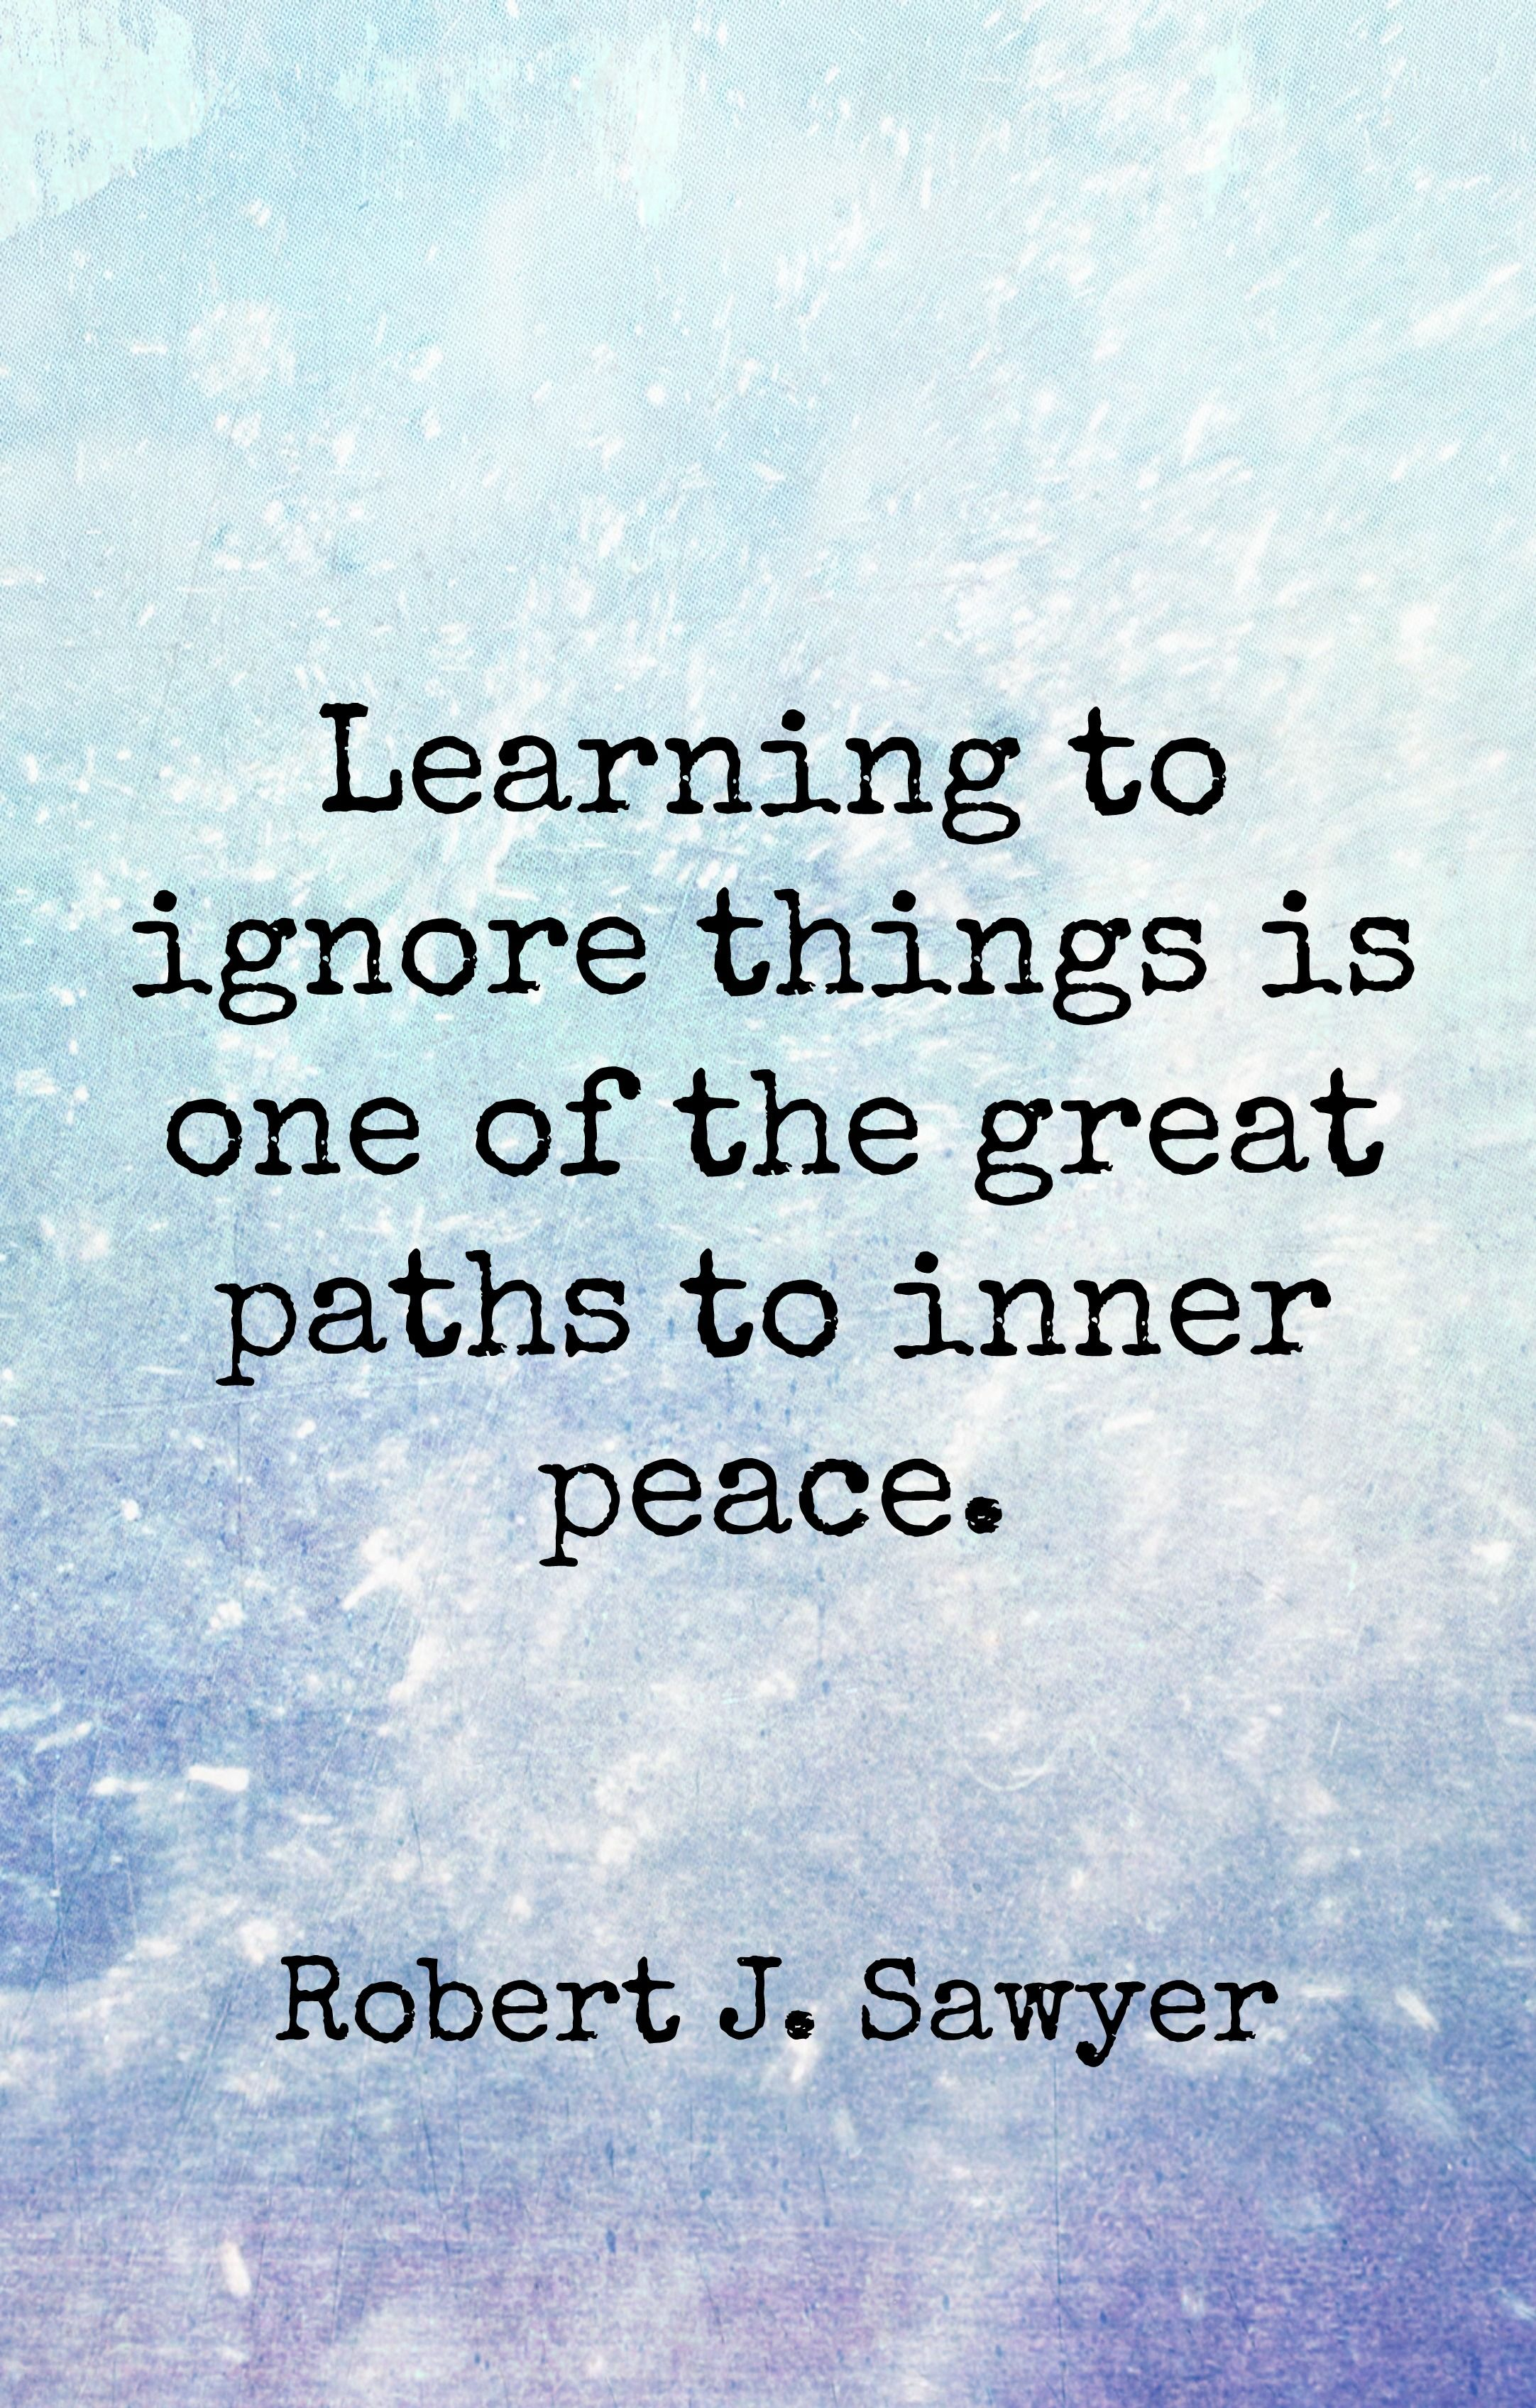 Finding Peace Quotes Captivating Learning To Ignore Things Is One Of The Great Paths To Inner Peace